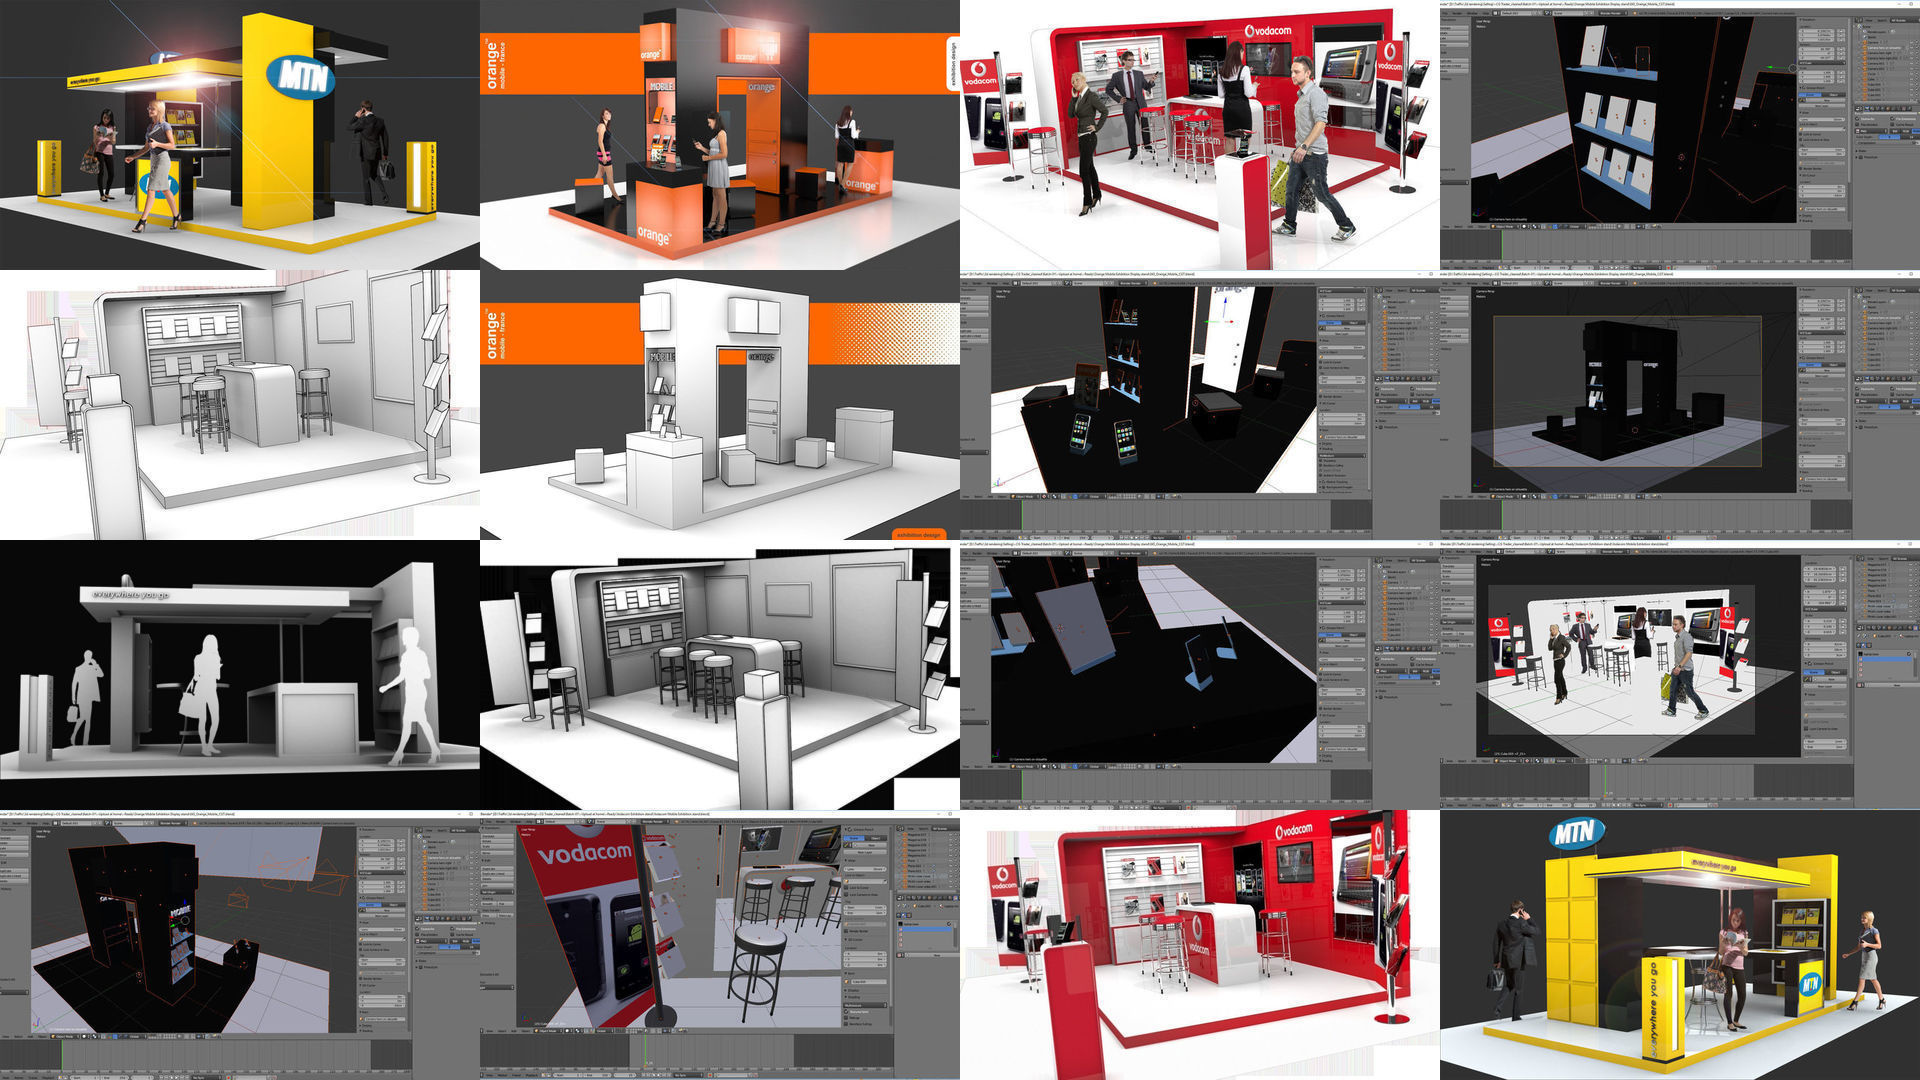 Exhibition Stands And Events : 3d model ultimate exhibition display stand for events